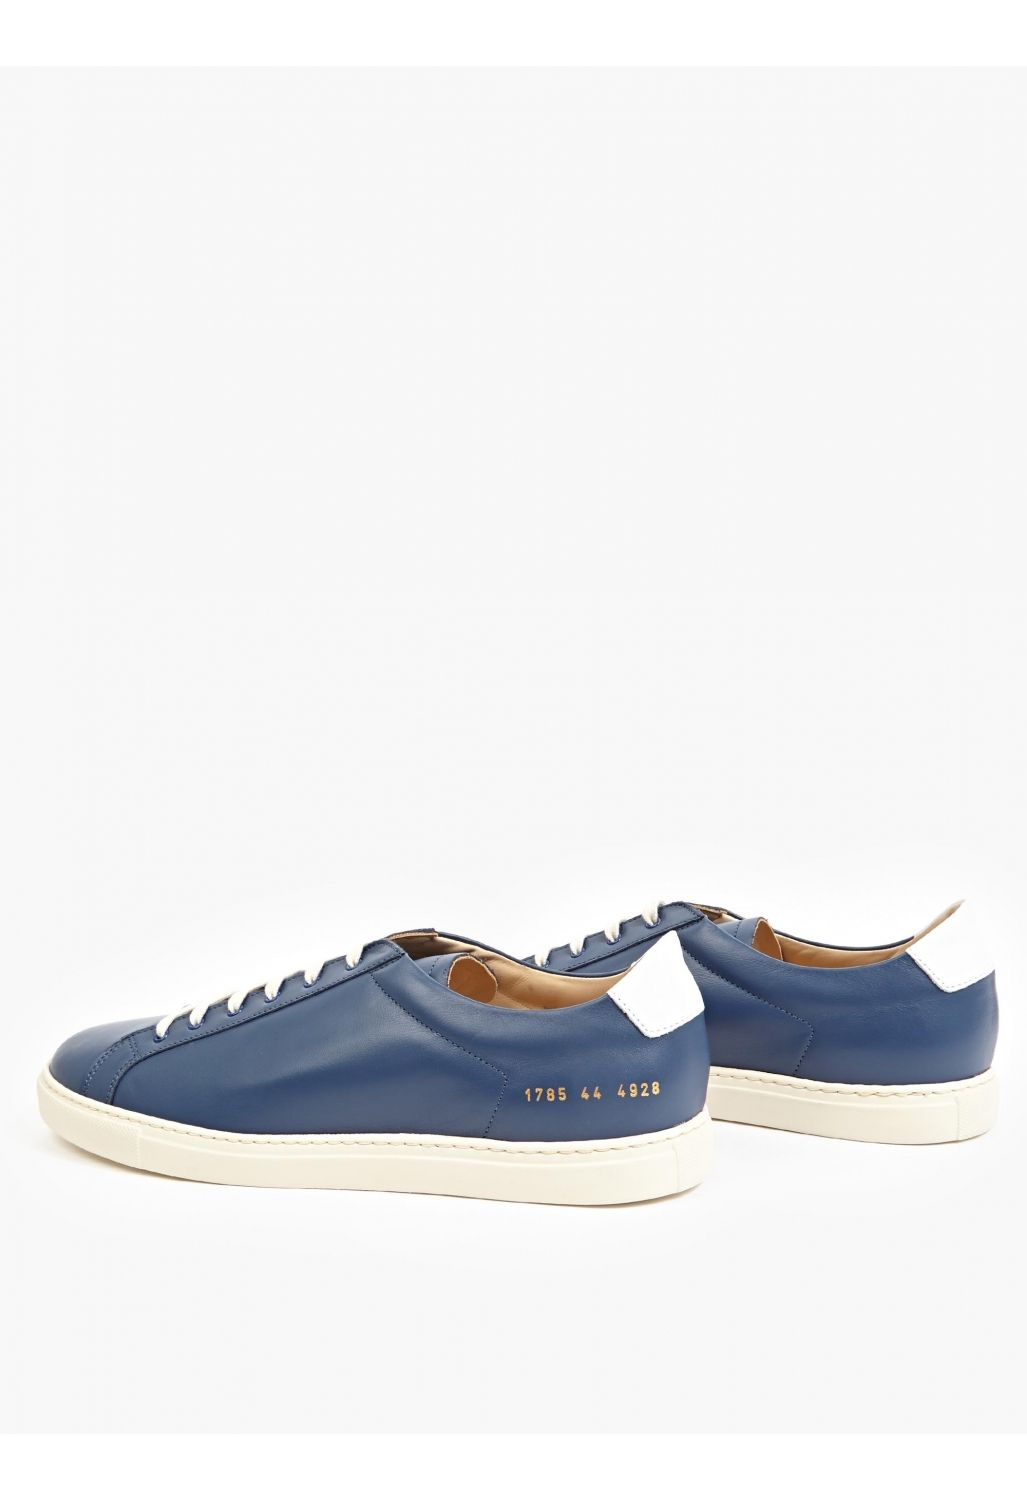 a23152f4a50dfb Summer Love For The Navy  Common Projects Navy Leather Achilles  Sneakers